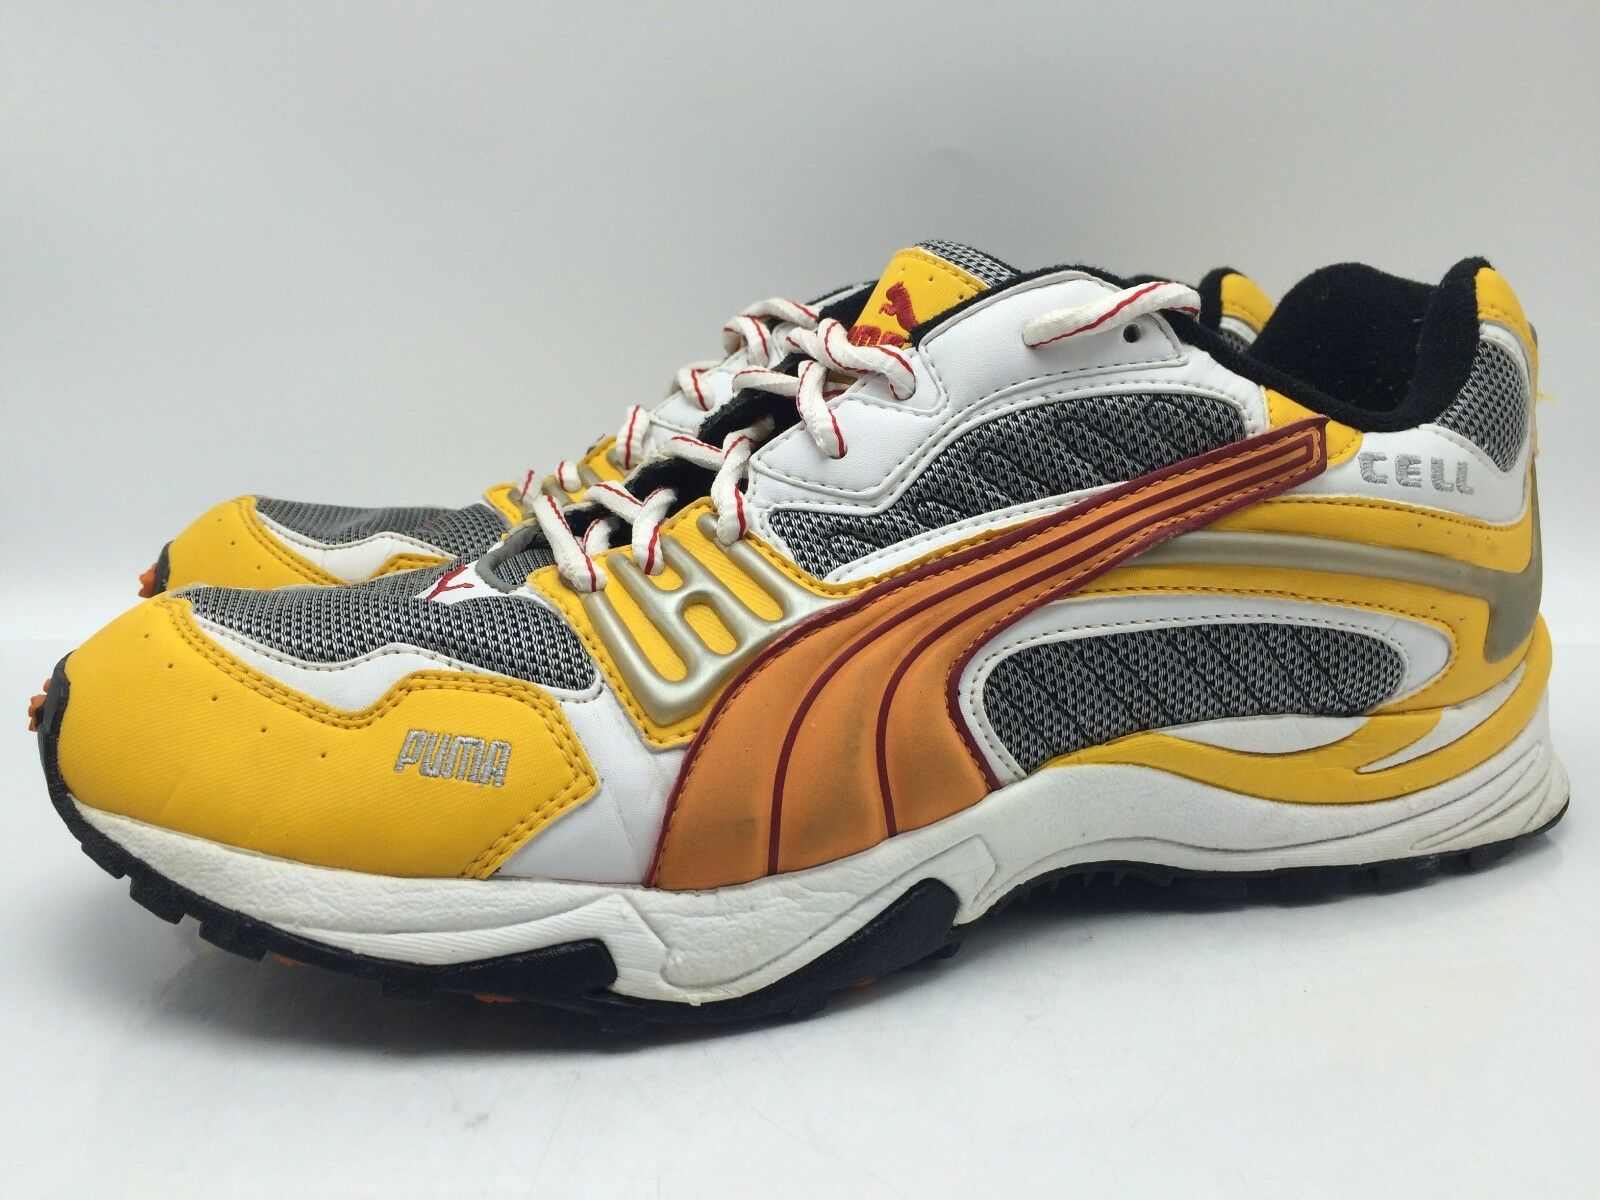 sports shoes 06fd1 04b62 9C3 Puma Cell Sneakers Running Athletic Training Jogging Comfy Men shoes  Size 10